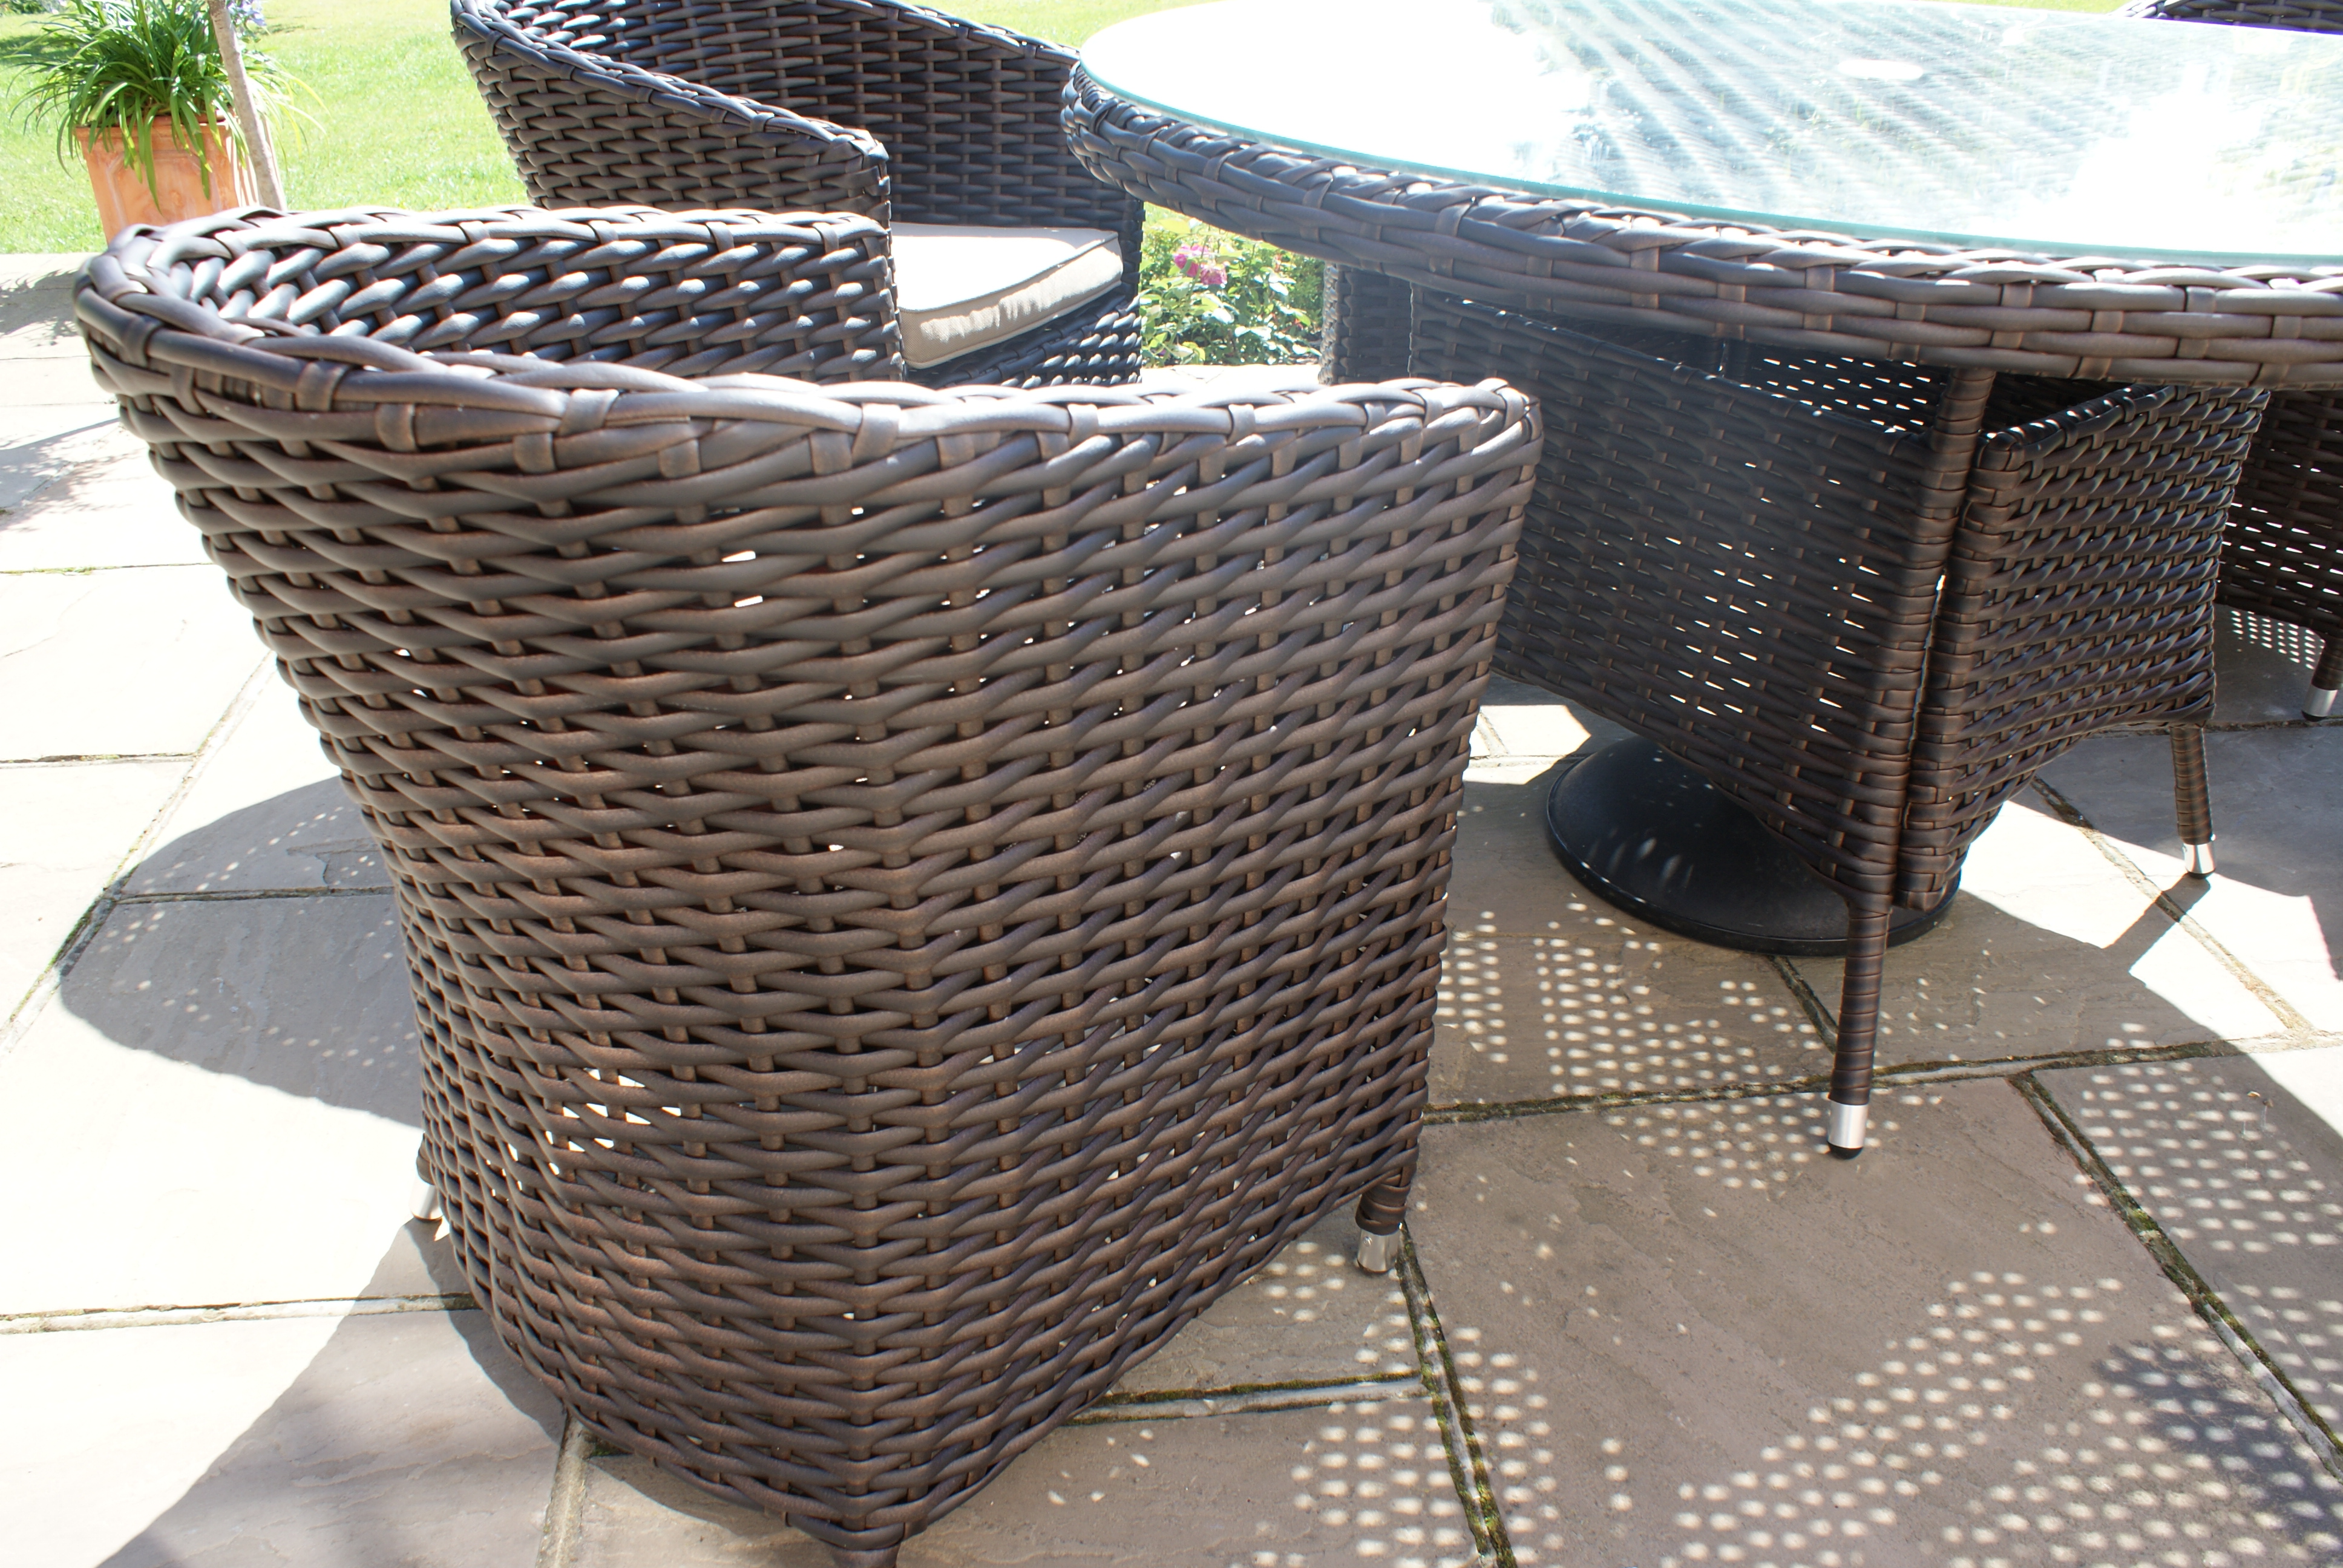 sienna rattan garden furniture outdoor small round table and 2 chairs